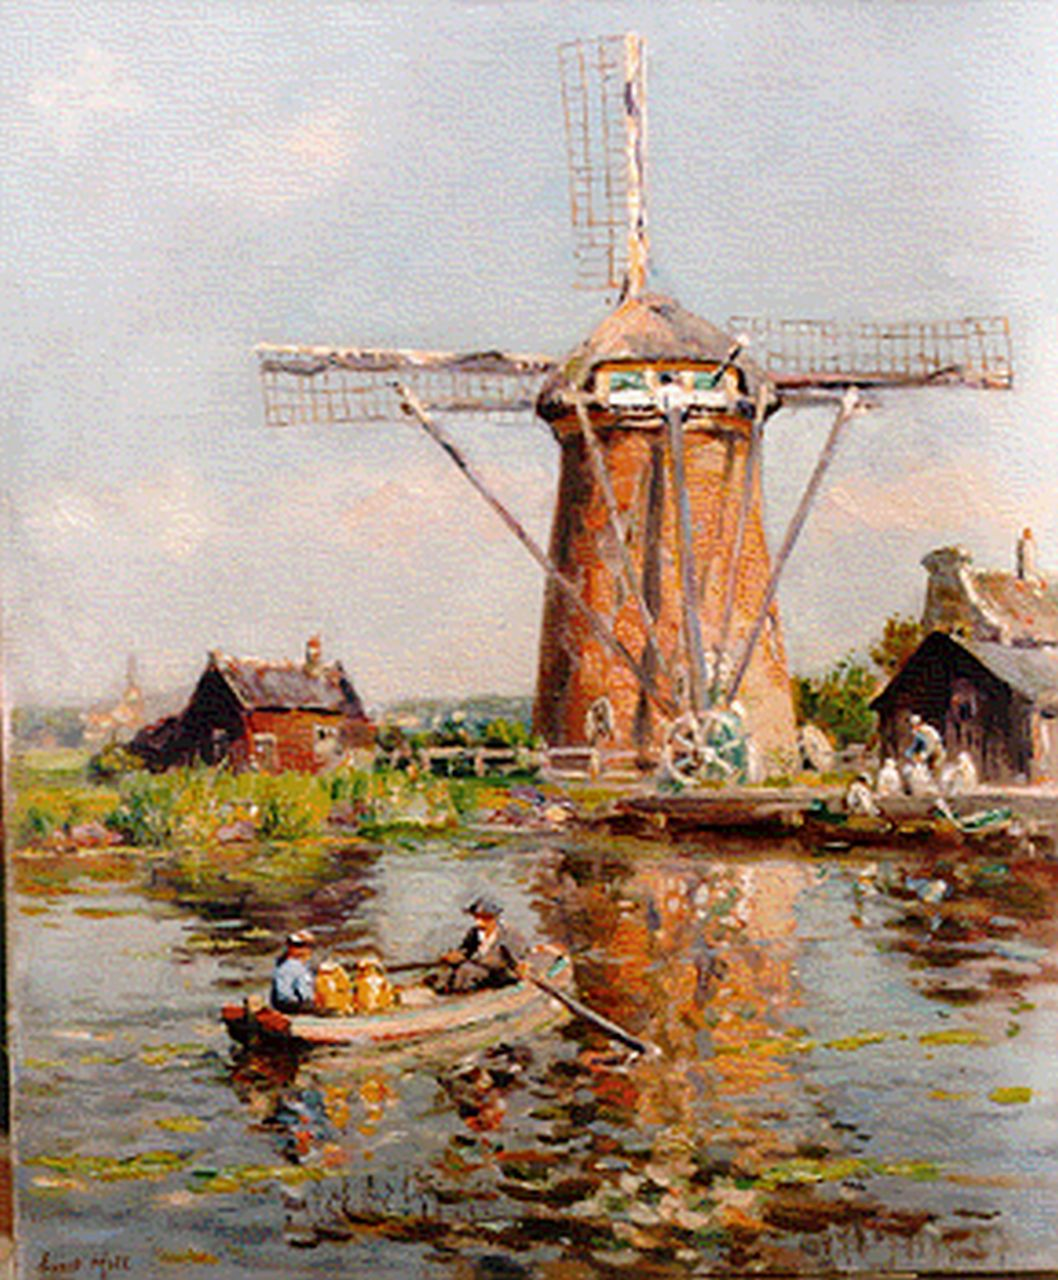 Moll E.  | Evert Moll, A windmill by Voorschoten, oil on canvas 60.0 x 50.0 cm, signed l.l.